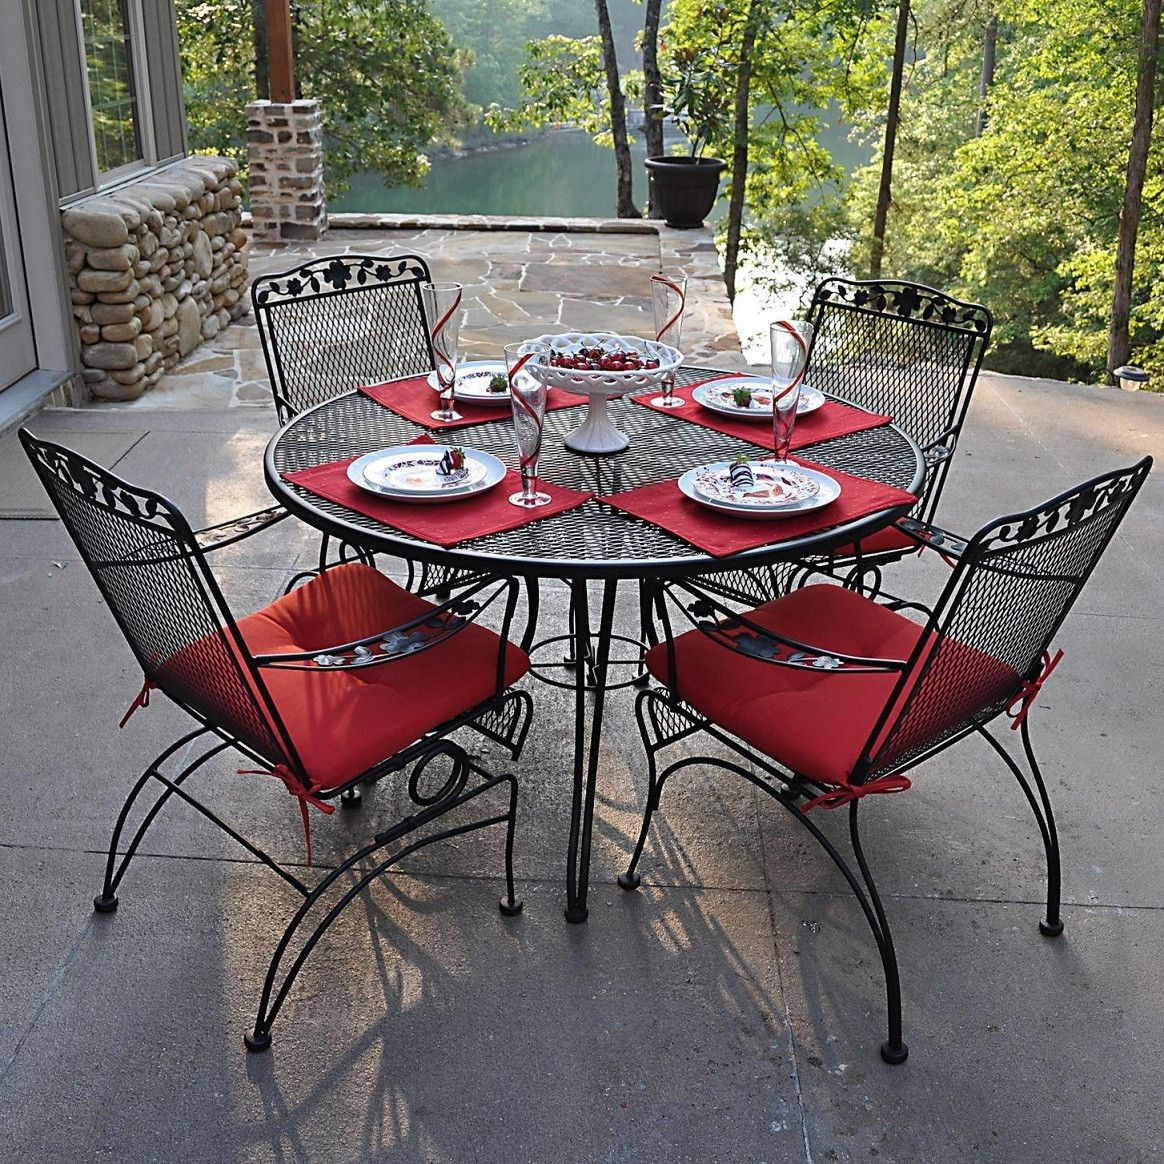 Outdoor Patio Wrought Iron Chair Pad Leather Scoop Dining Chairs Pin By Neby On House Plans Ideas Pinterest Furniture Cushions Country Home Office Check More At Http